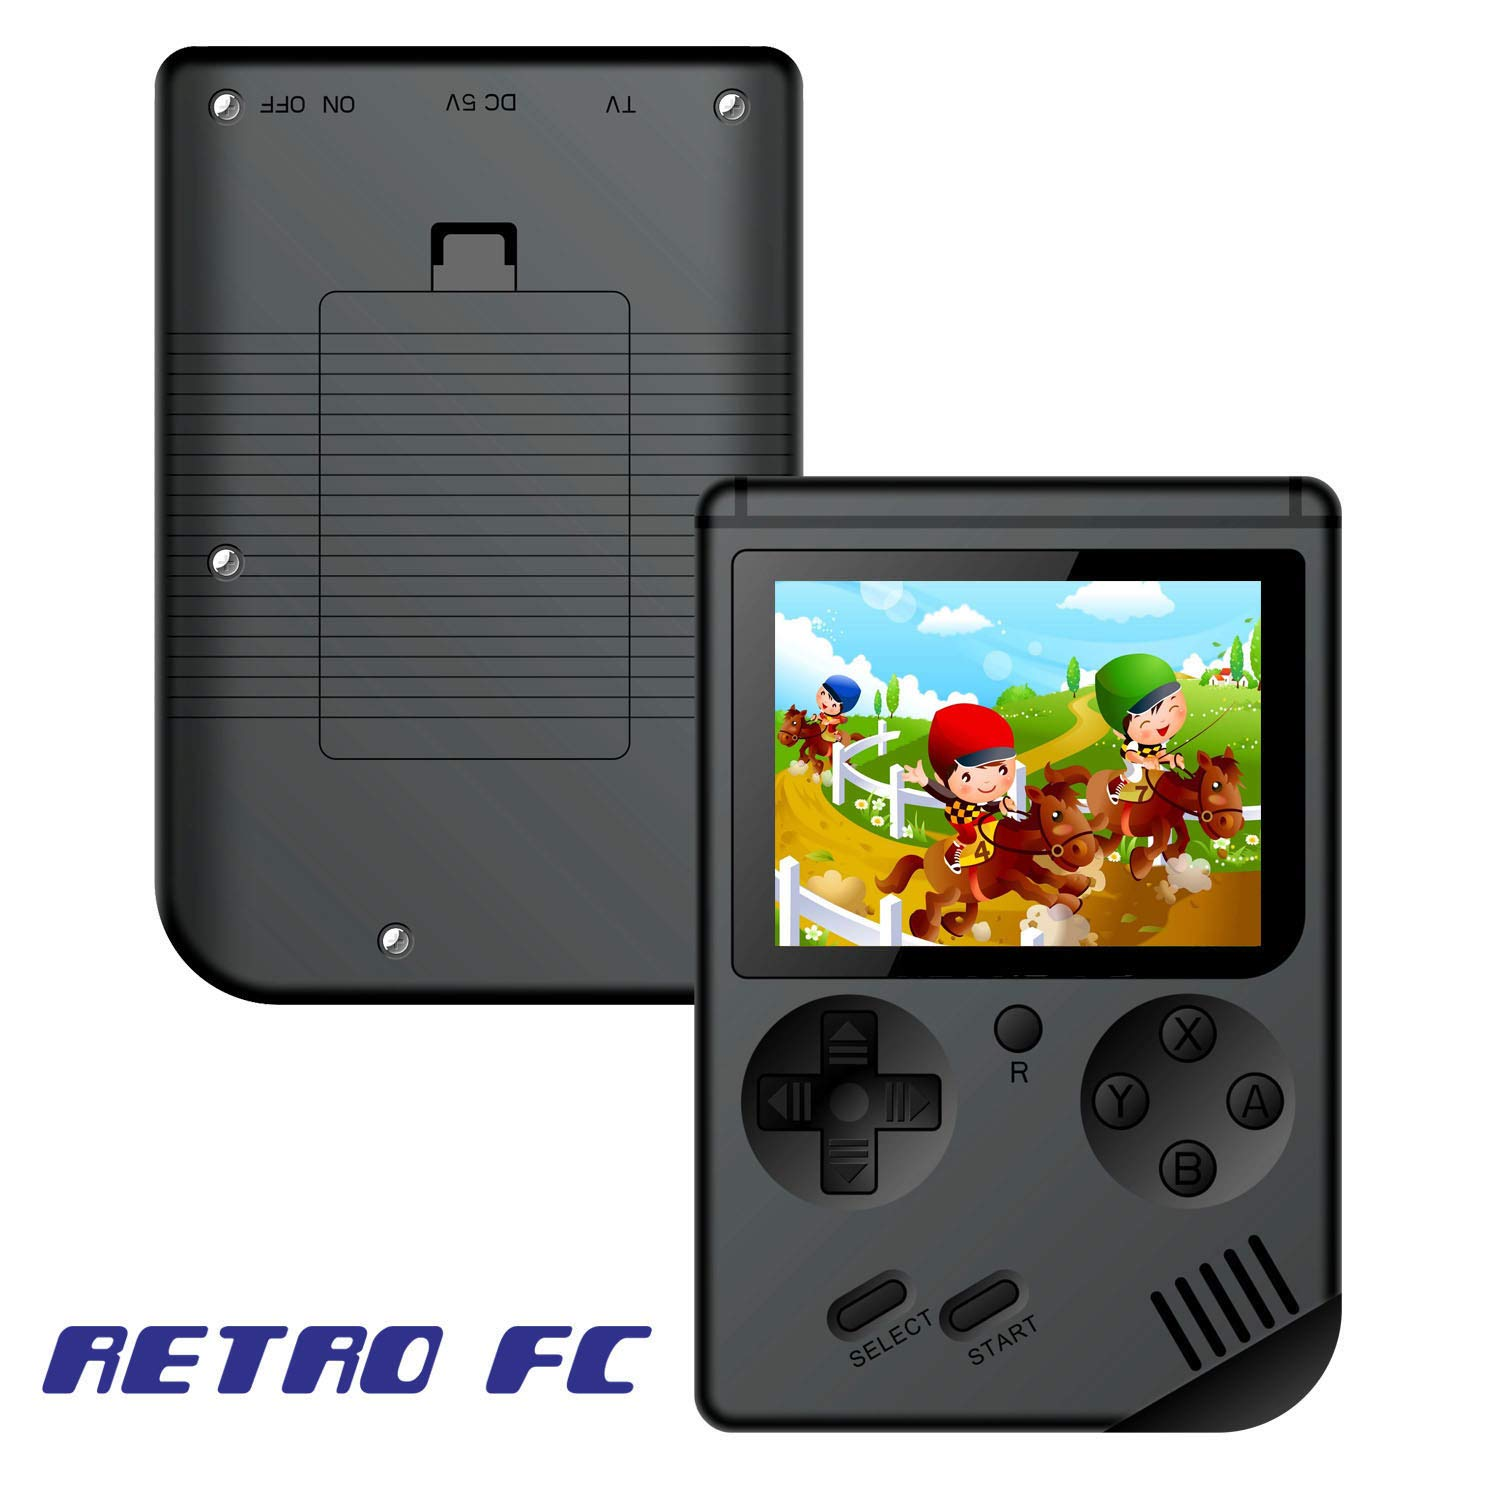 168 Games MINI Portable Retro Video Console Handheld Game Advance Players Boy 8 Bit Built-in Gameboy 3.0 Inch Color LCD Screen